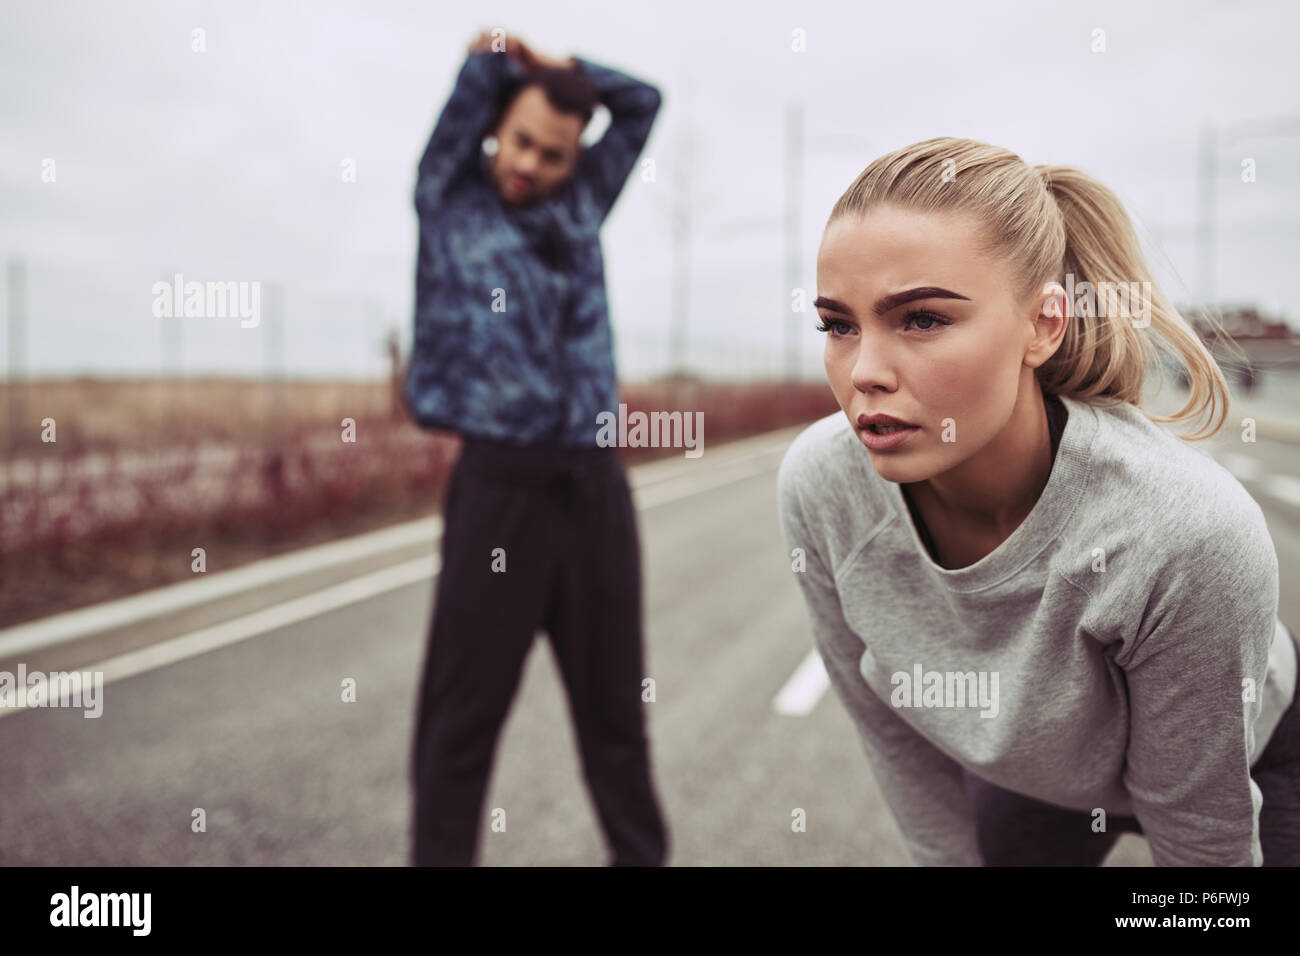 Yougn woman in sportswear preparing for a run along a country road with her boyfriend doing stretches in the background Stock Photo